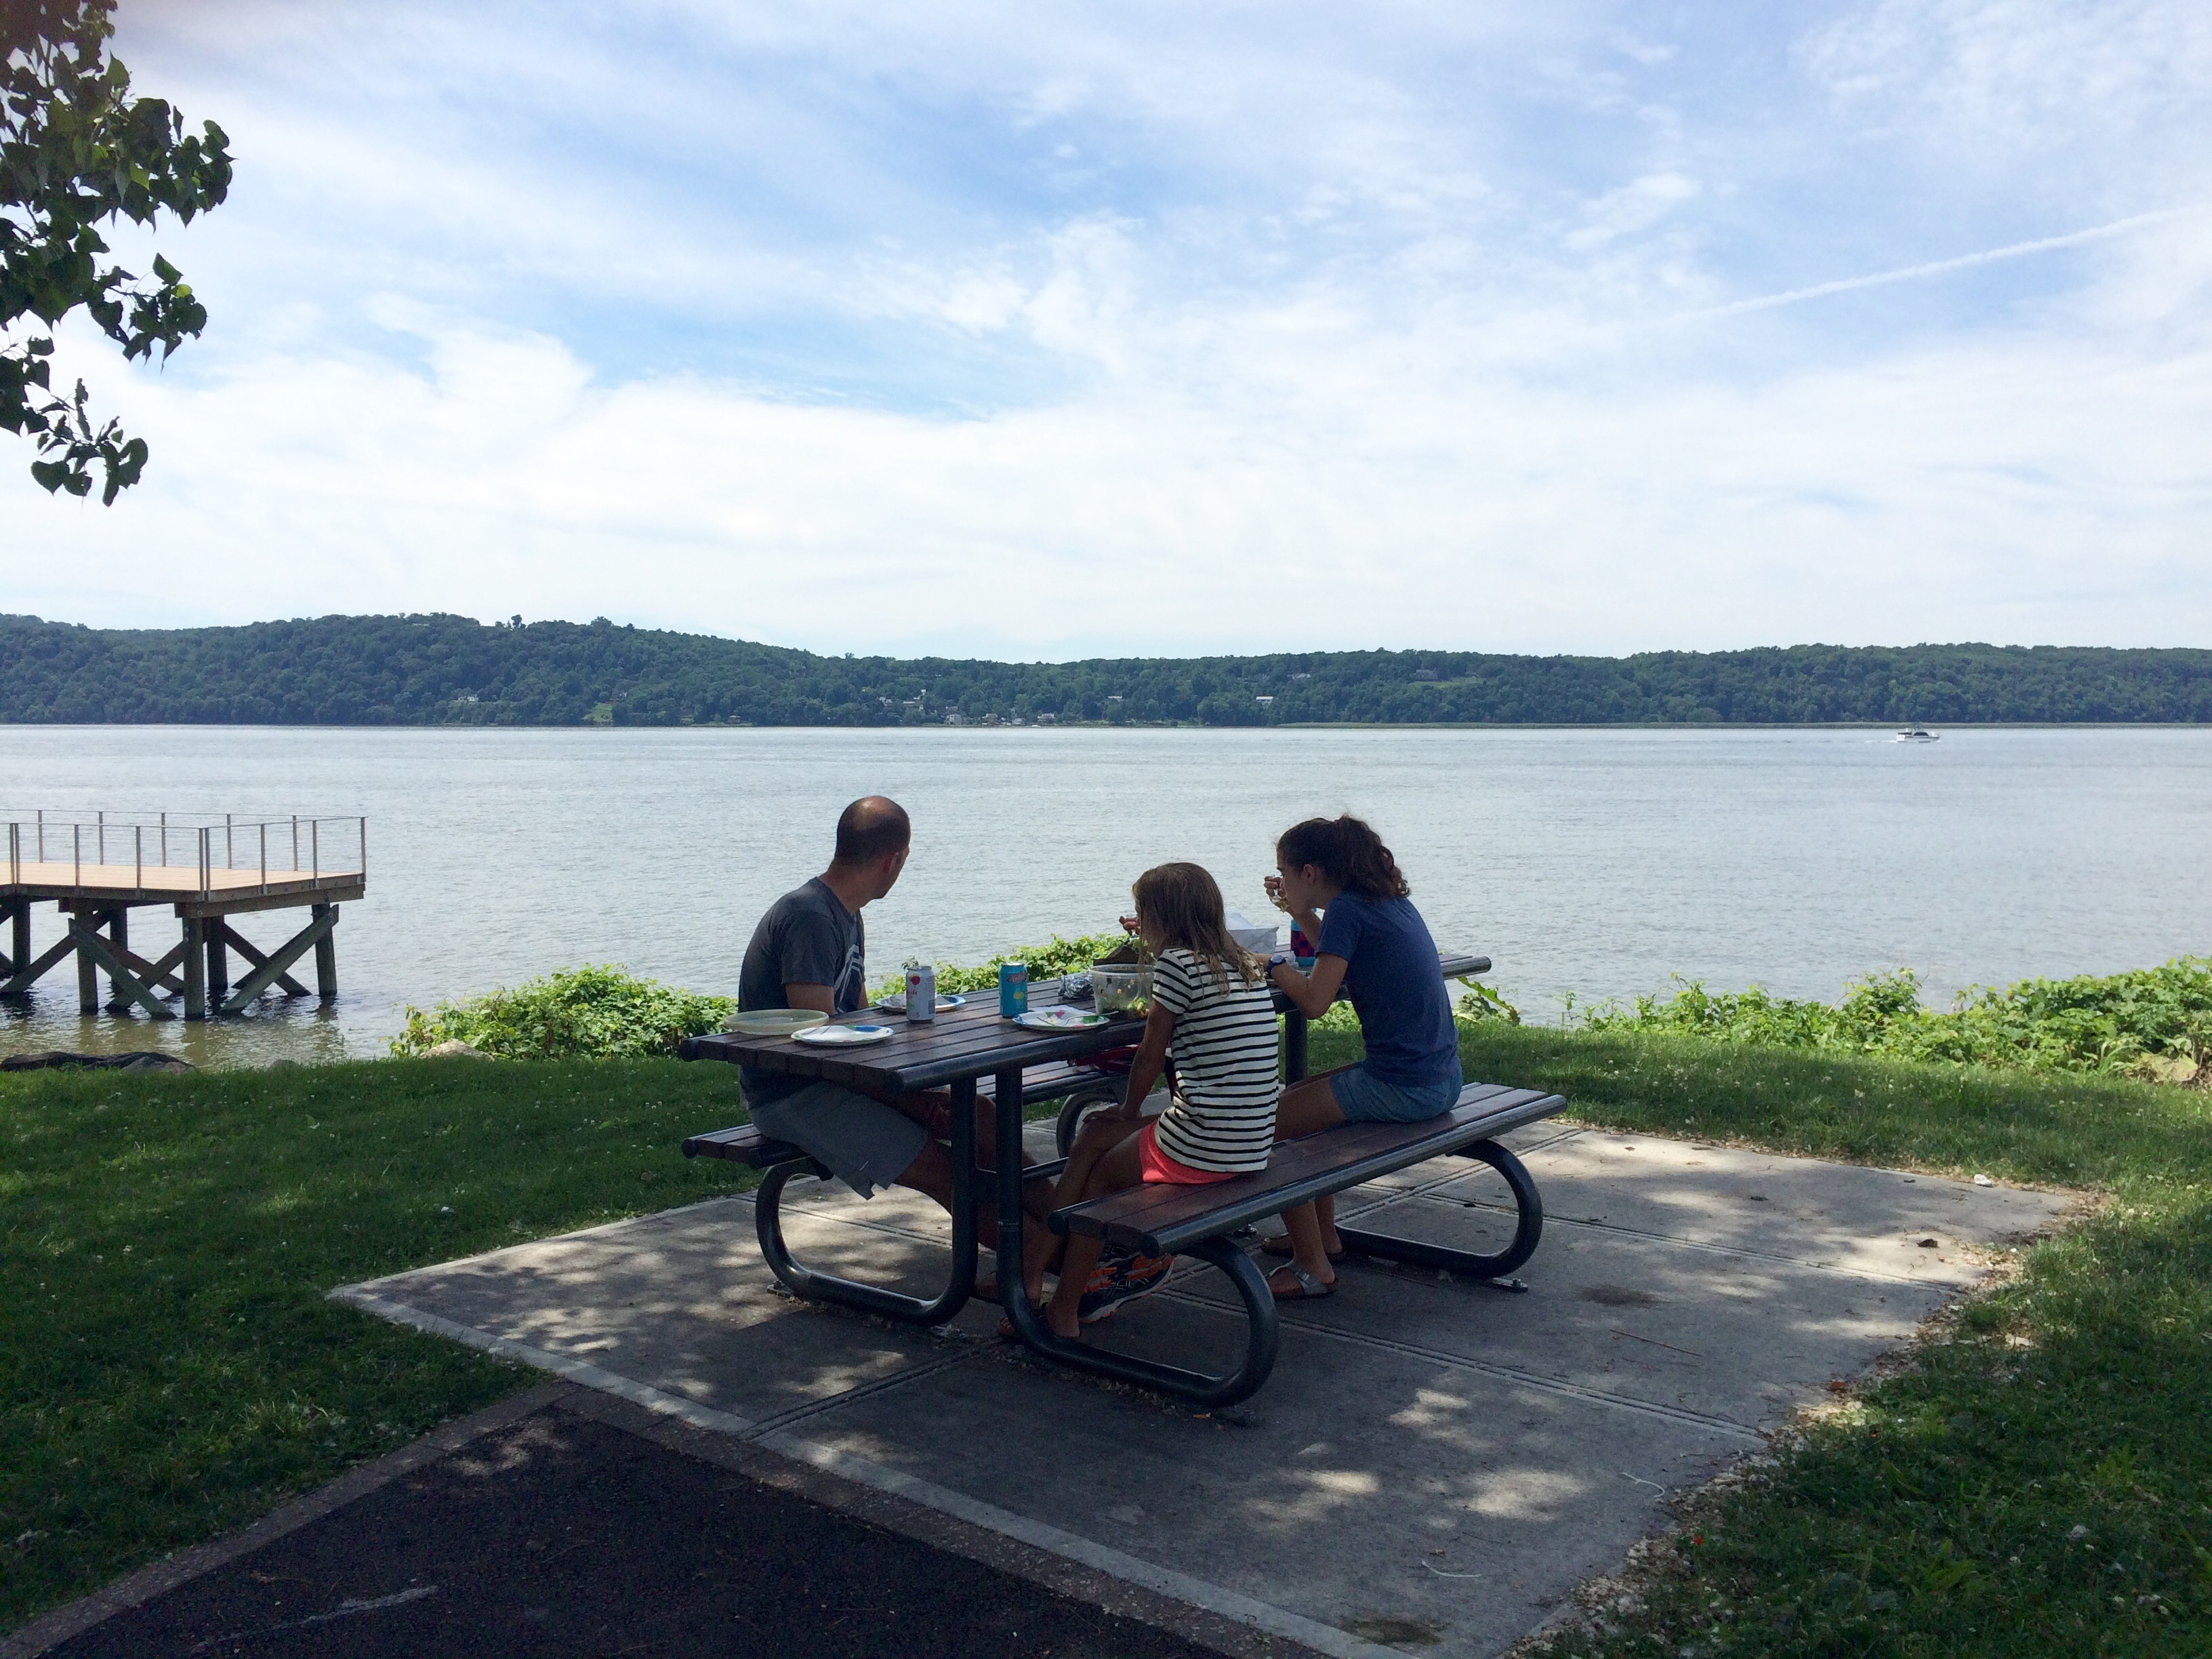 Favorite Place For Al Fresco Dining: Waterfront Park (Dobbs Ferry)u2026About  That Worldu0027s Greatest Picnic. Almost Every Rivertown Has A Waterfront Park  With ...